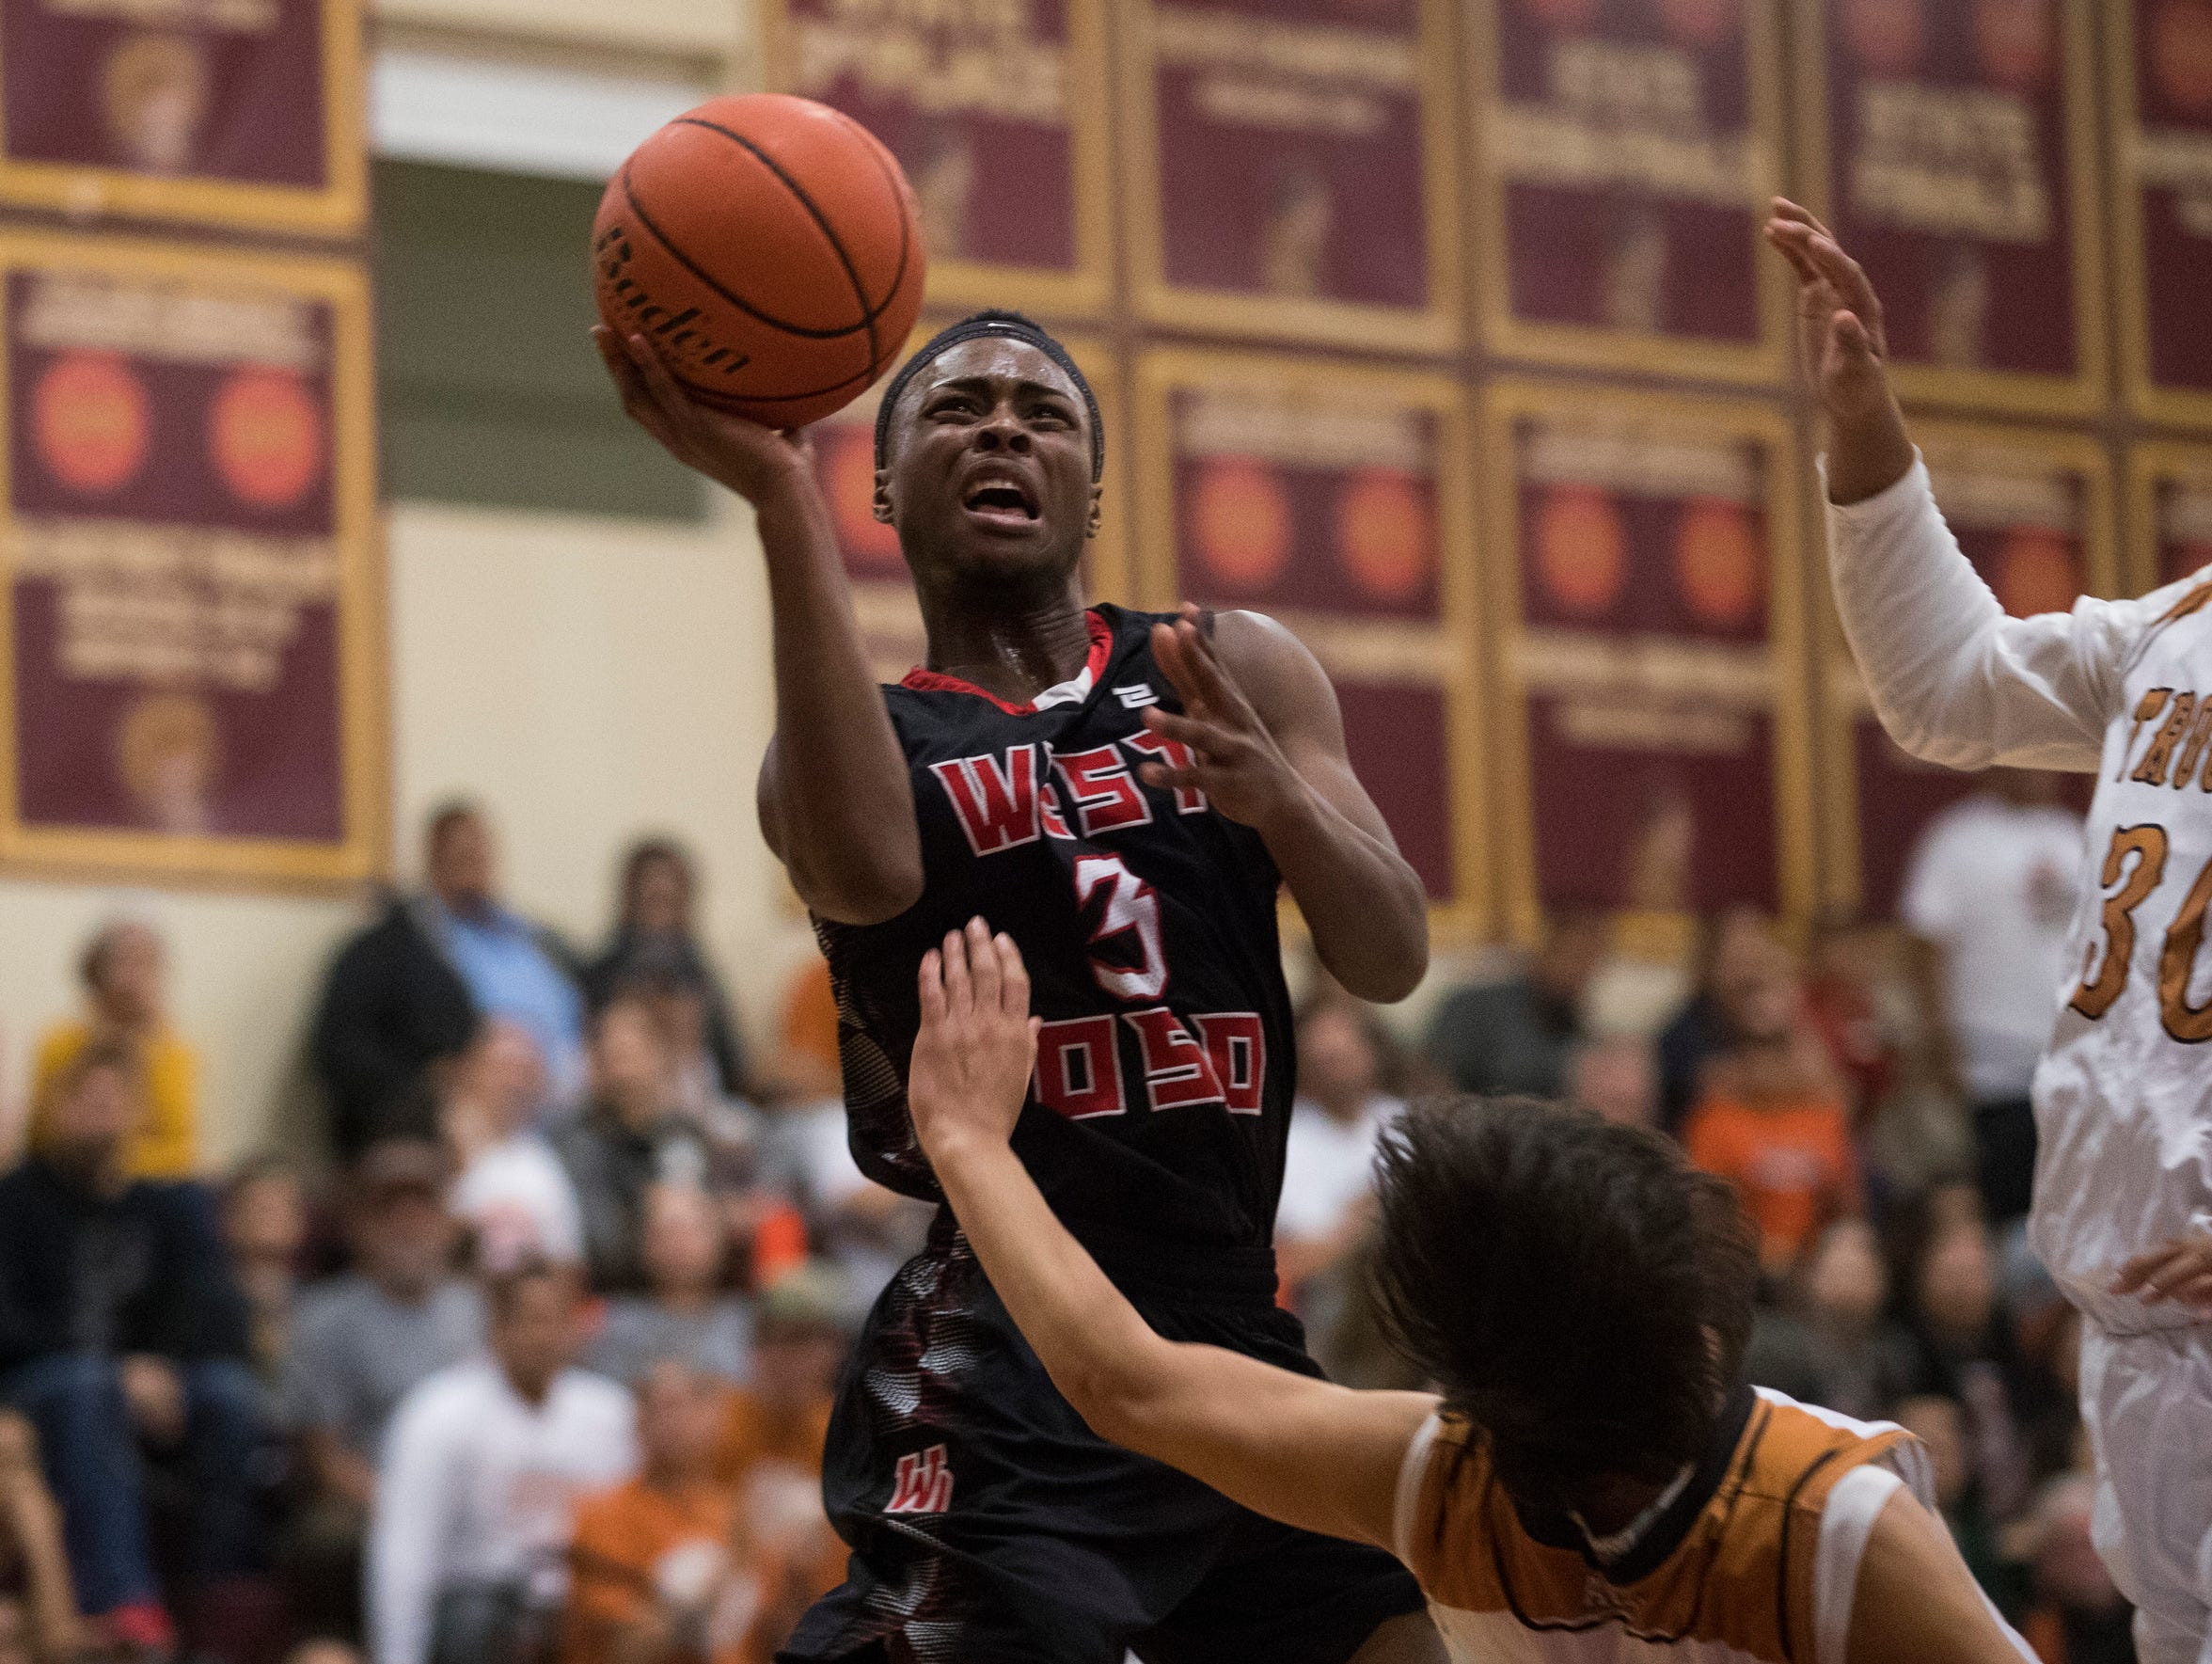 West Oso's Creighton Avery shoots the ball past Beeville